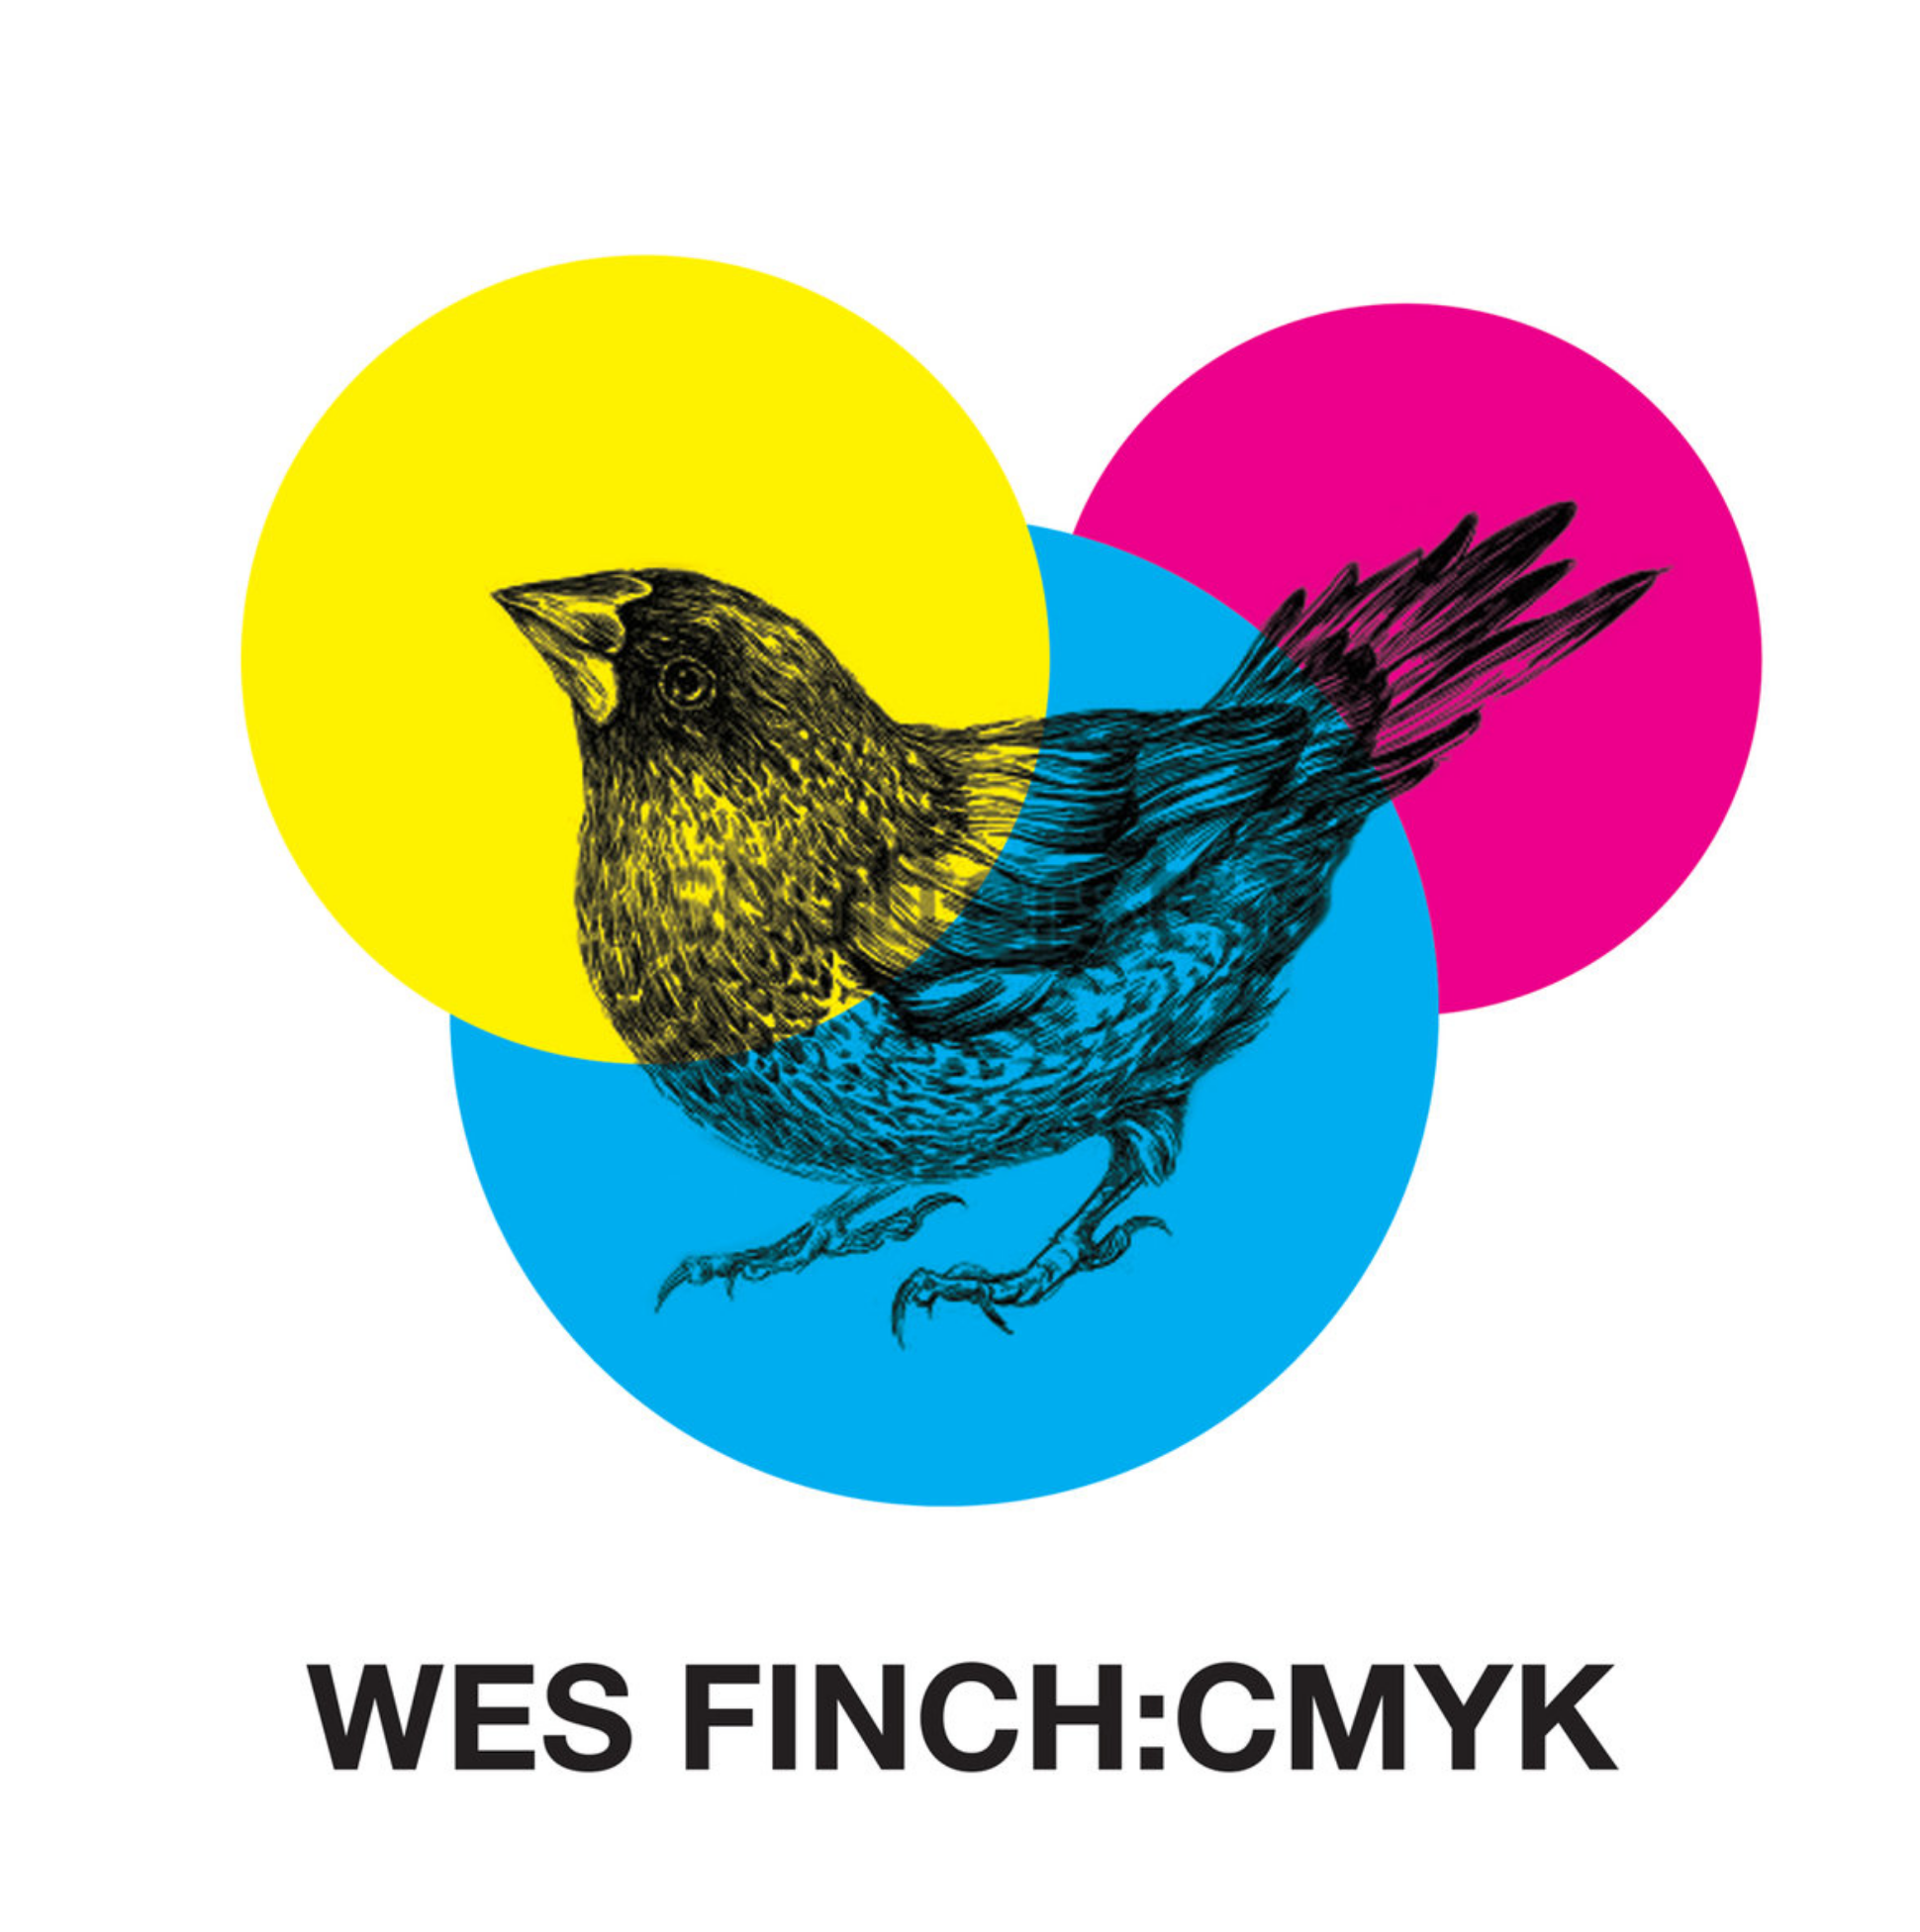 Wes Finch